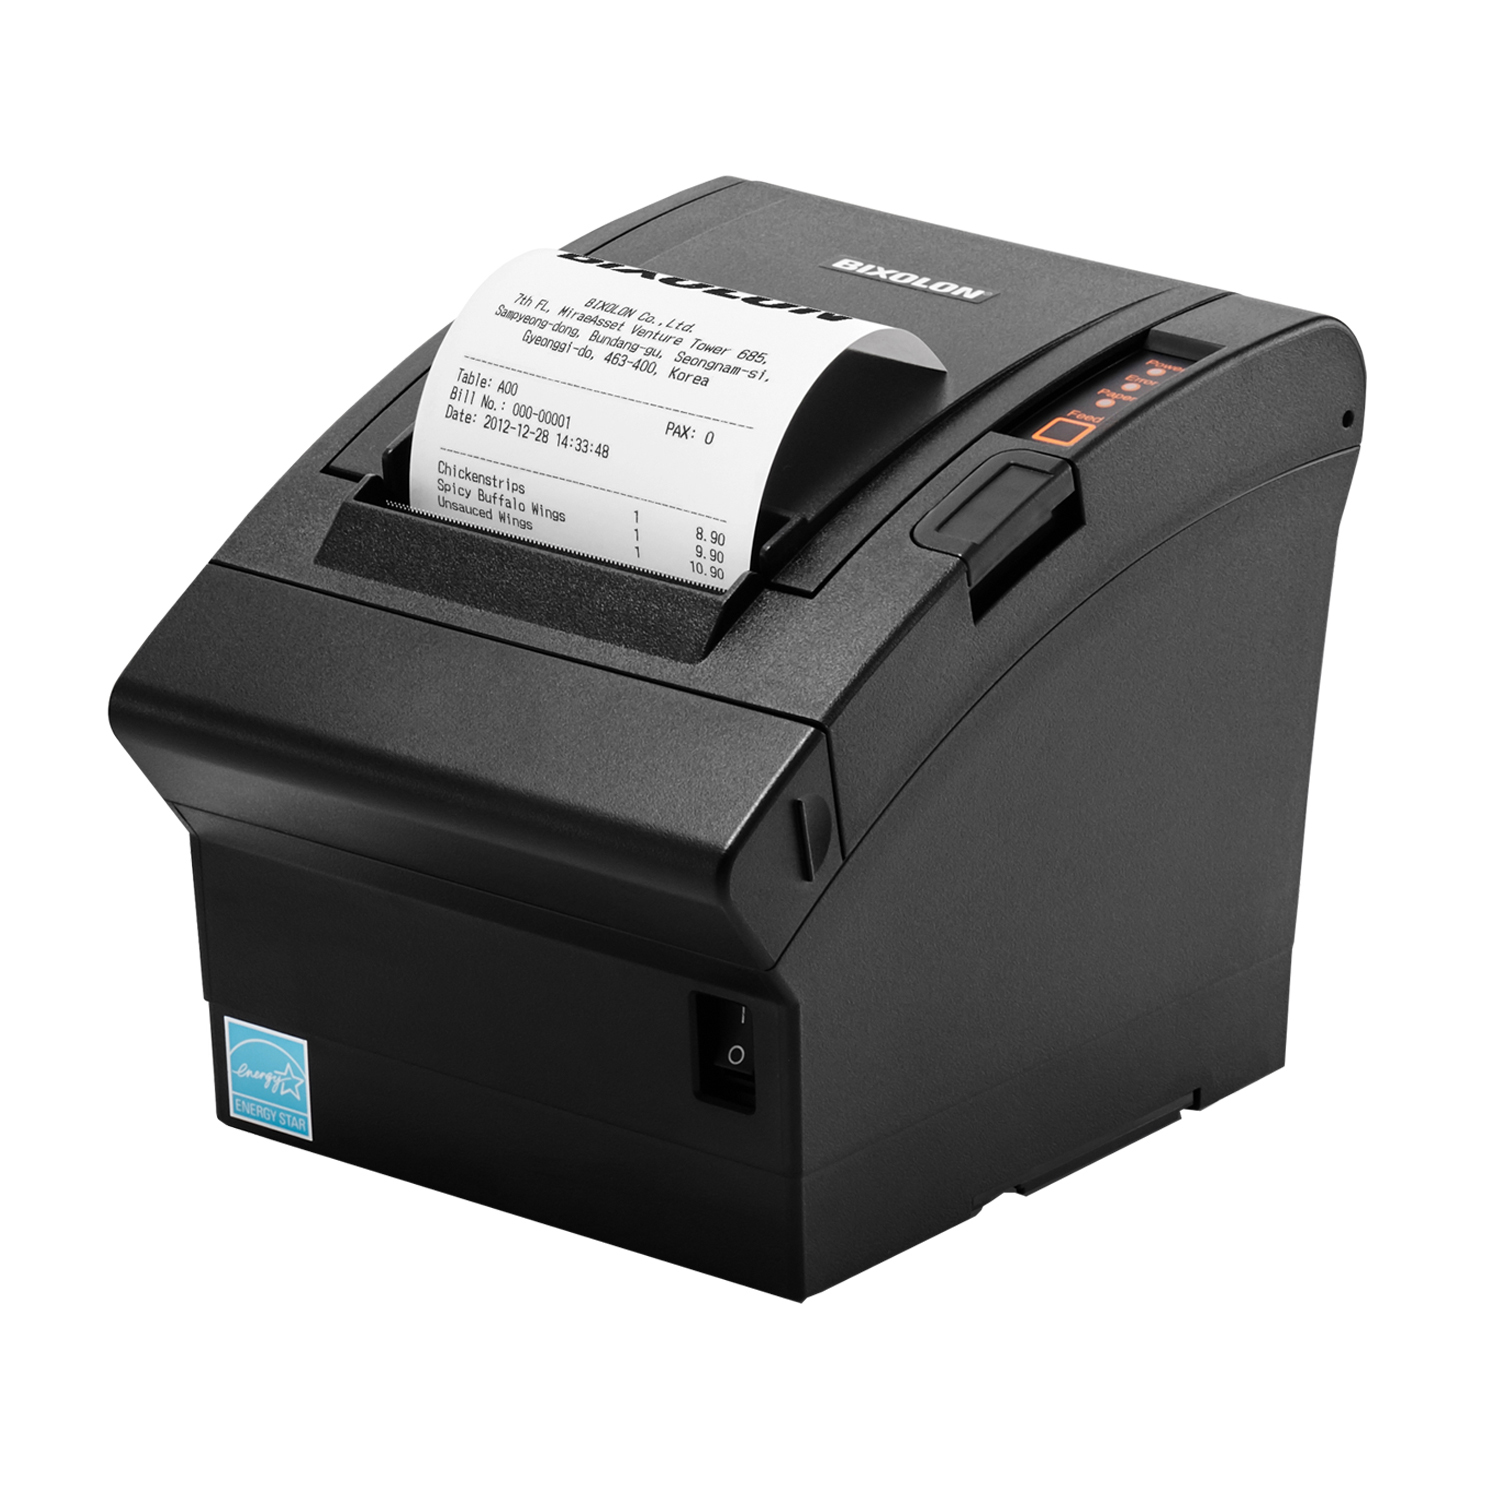 BIXOLON SRP-380 DIRECT THERMAL POS PRINTER 180 X 180DPI